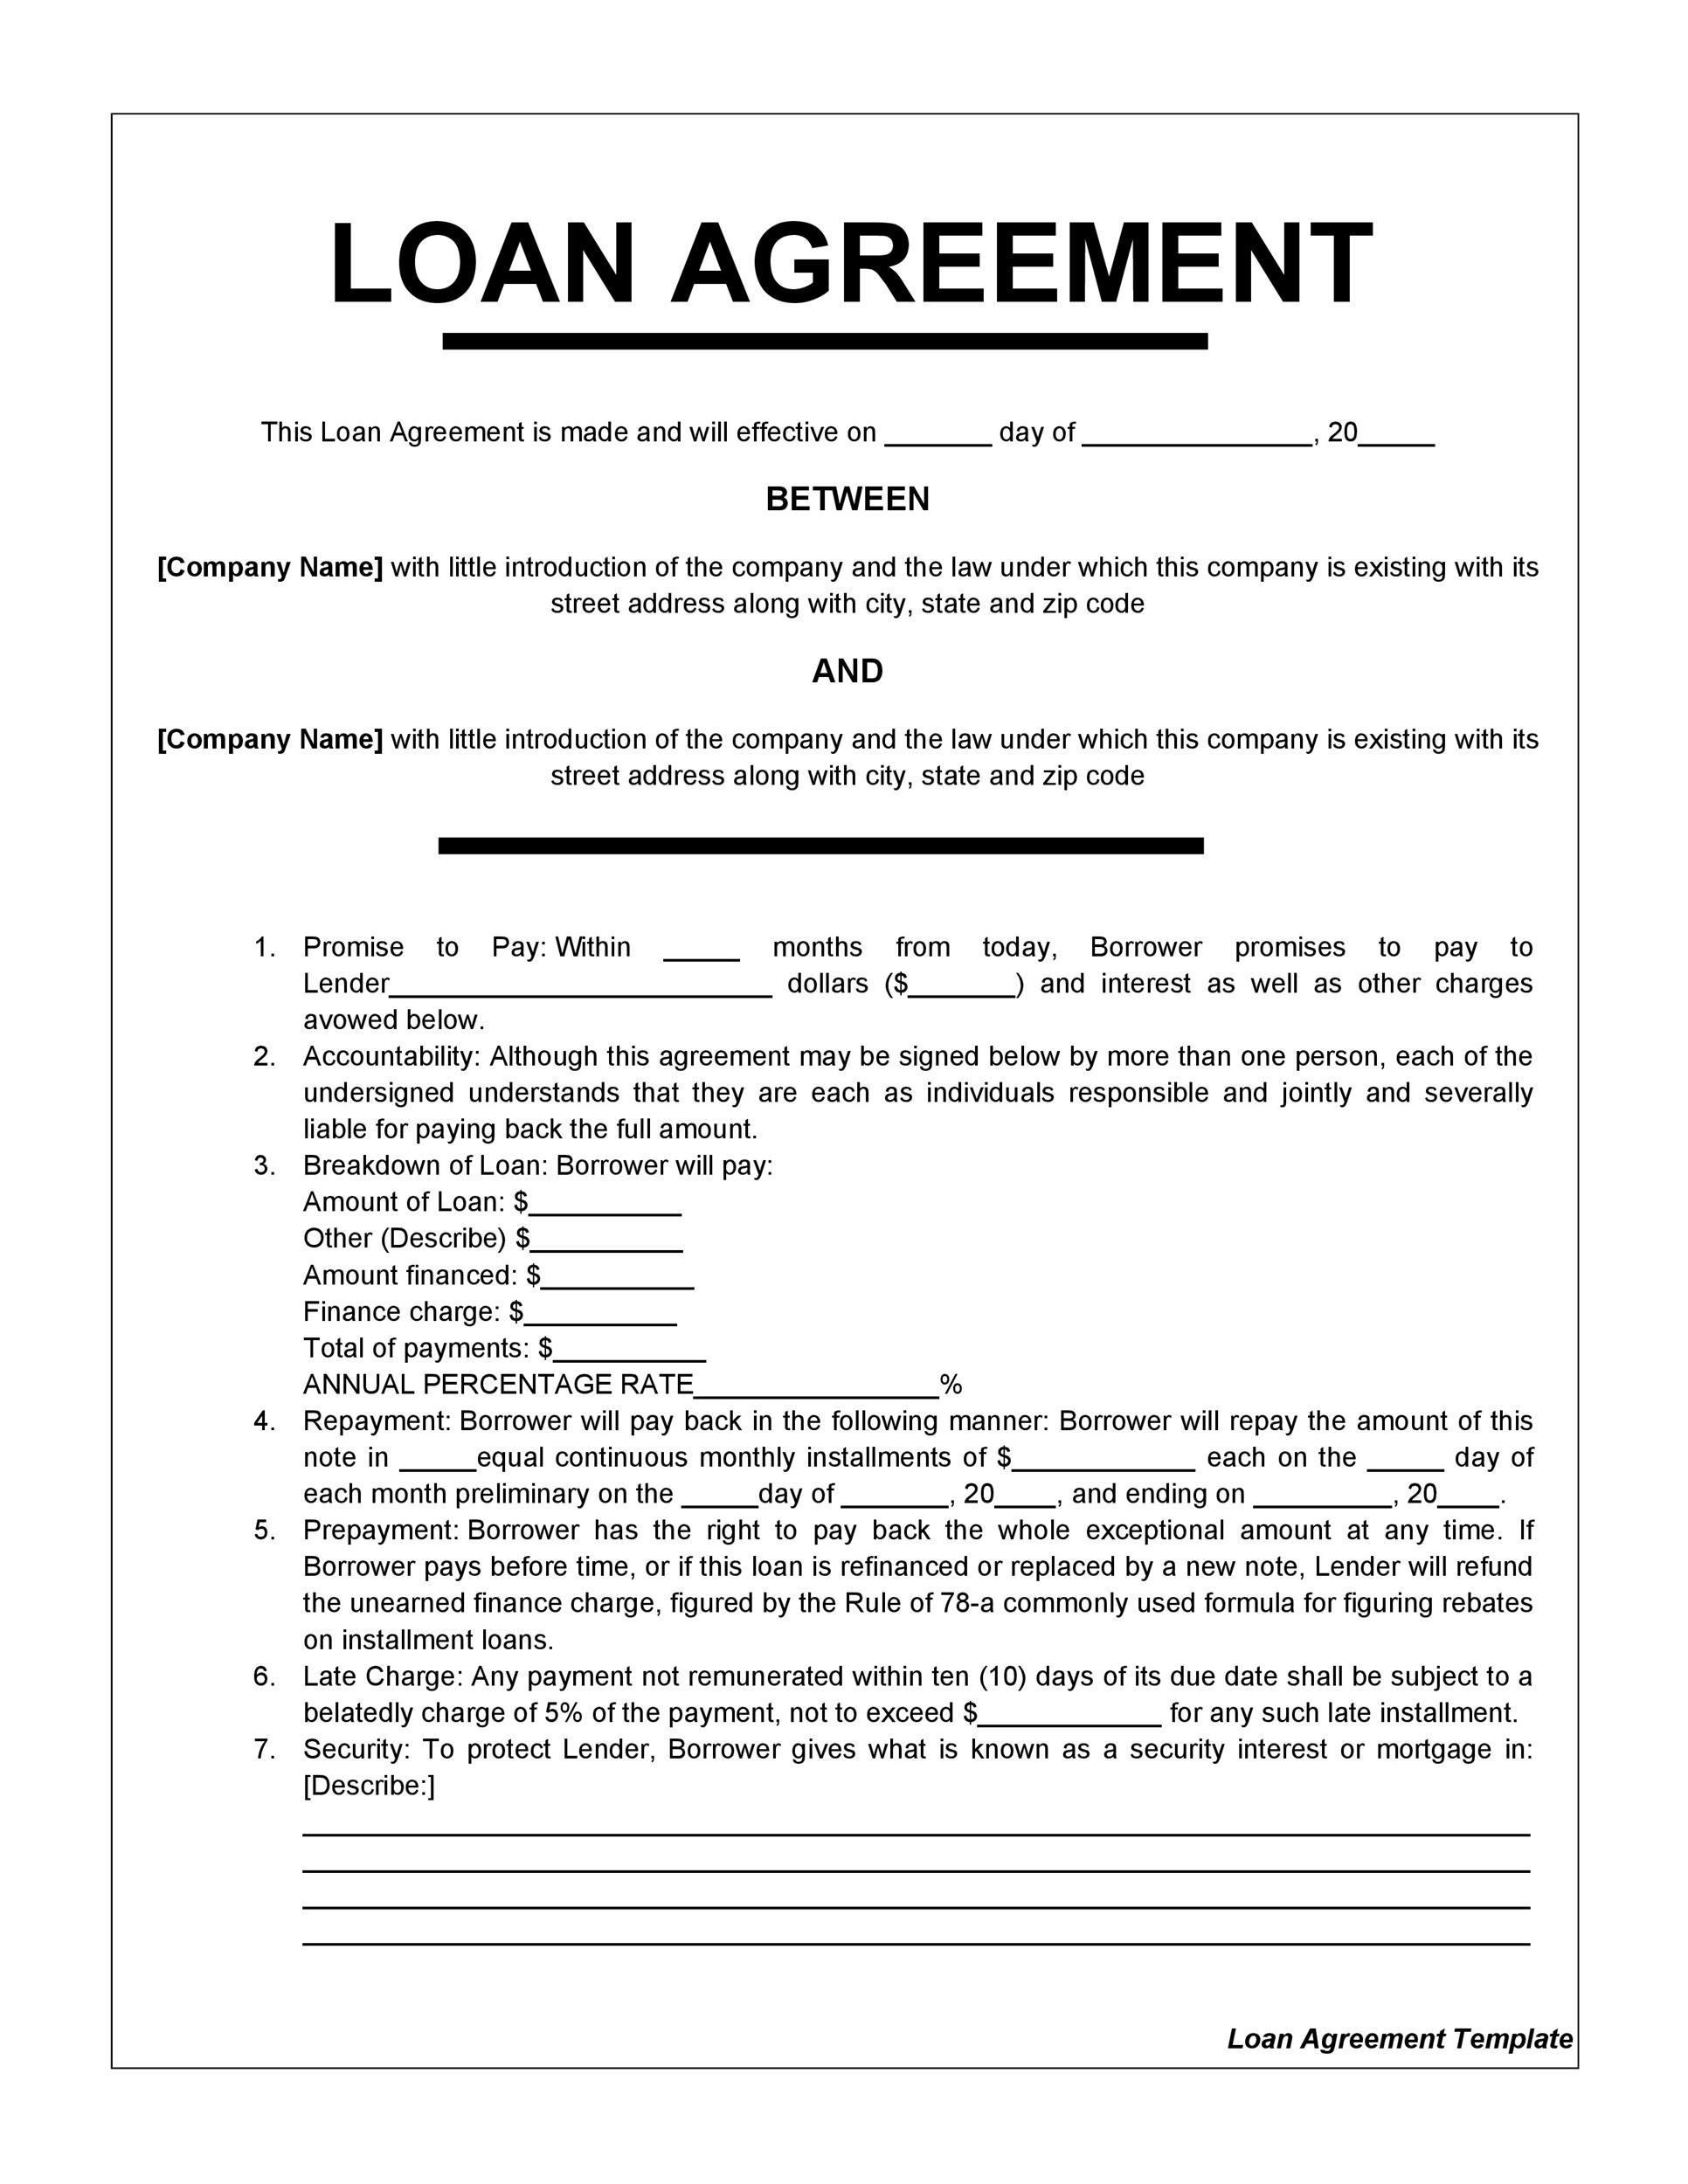 A loan agreement is a document between a borrower and lender that details a loan repayment schedule. Loan Agreement Example